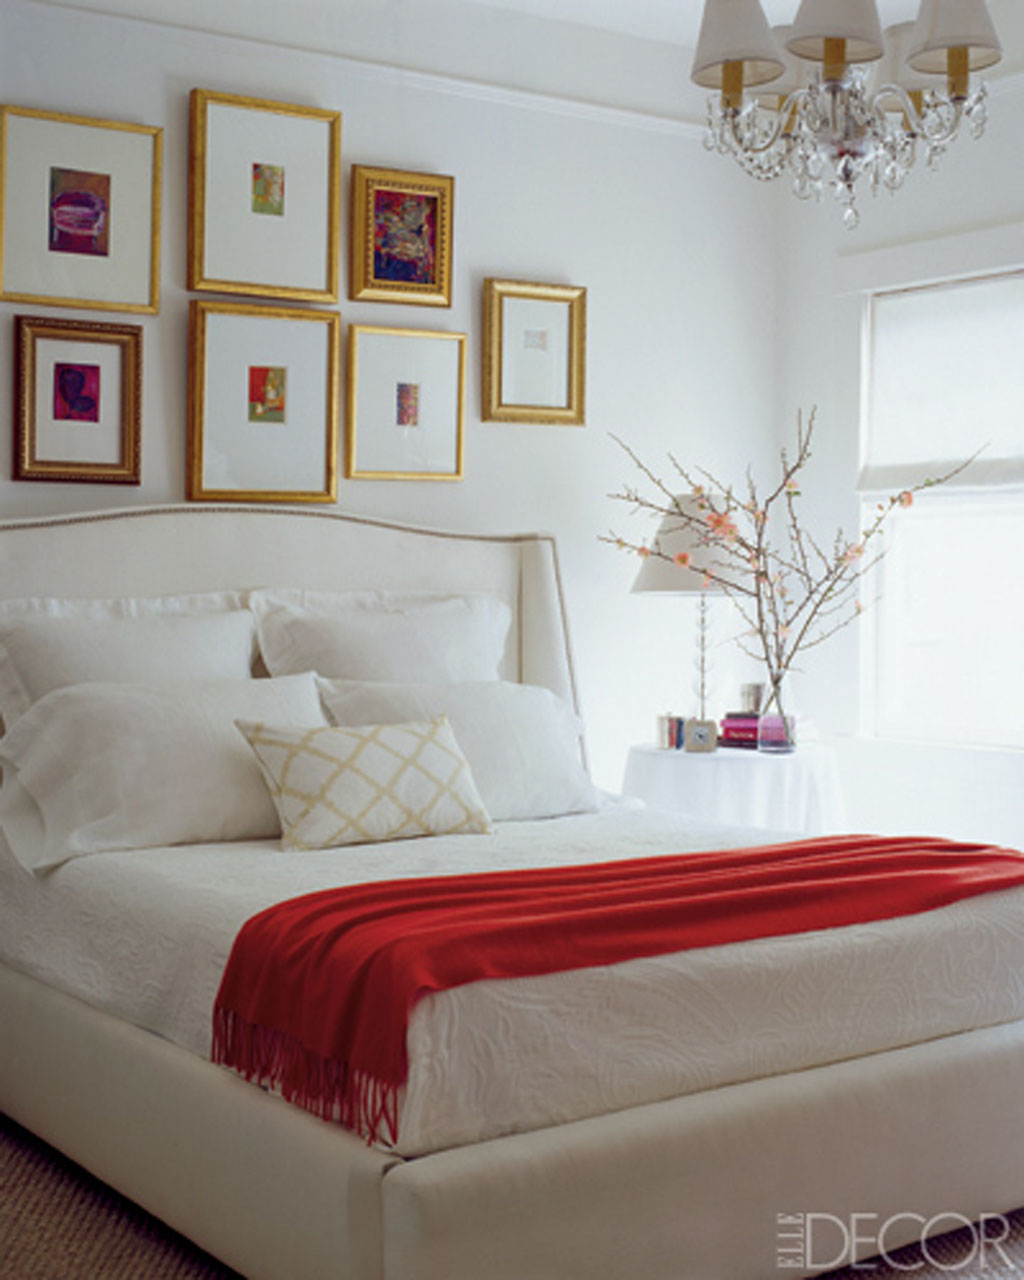 Black white and red bedroom ideas 5 small interior ideas for Bedroom designs red and black